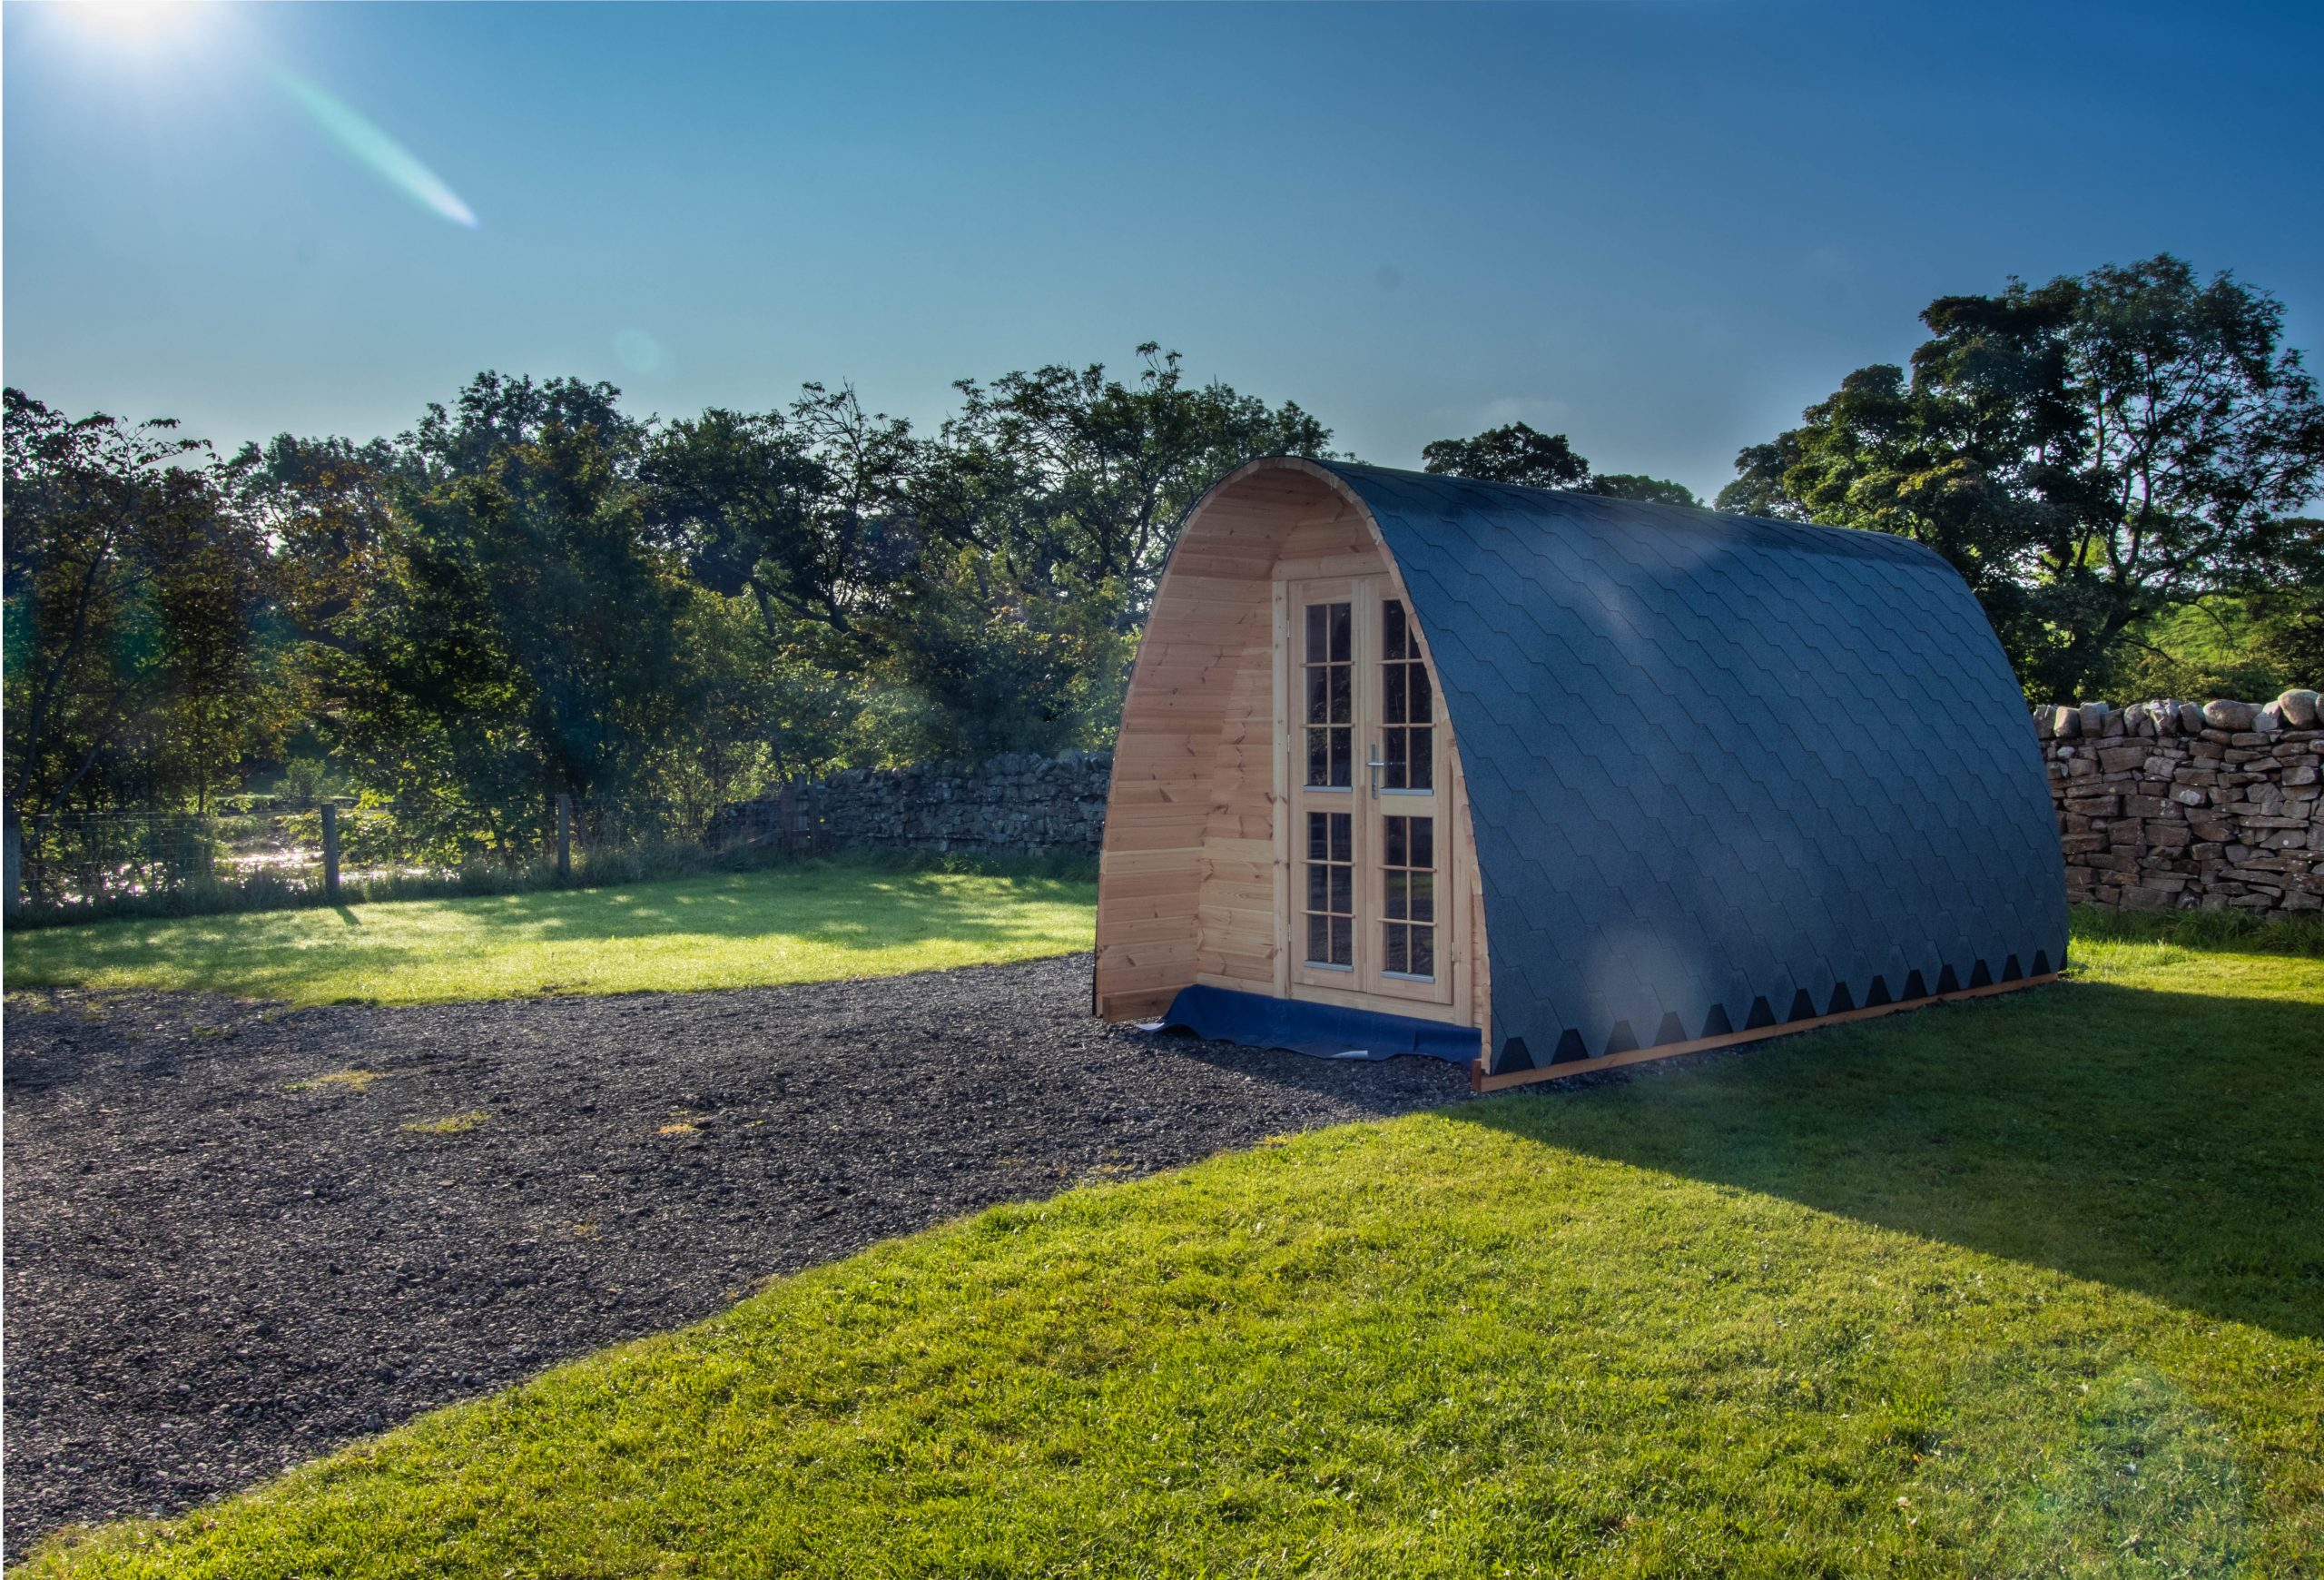 camping pod teesdale